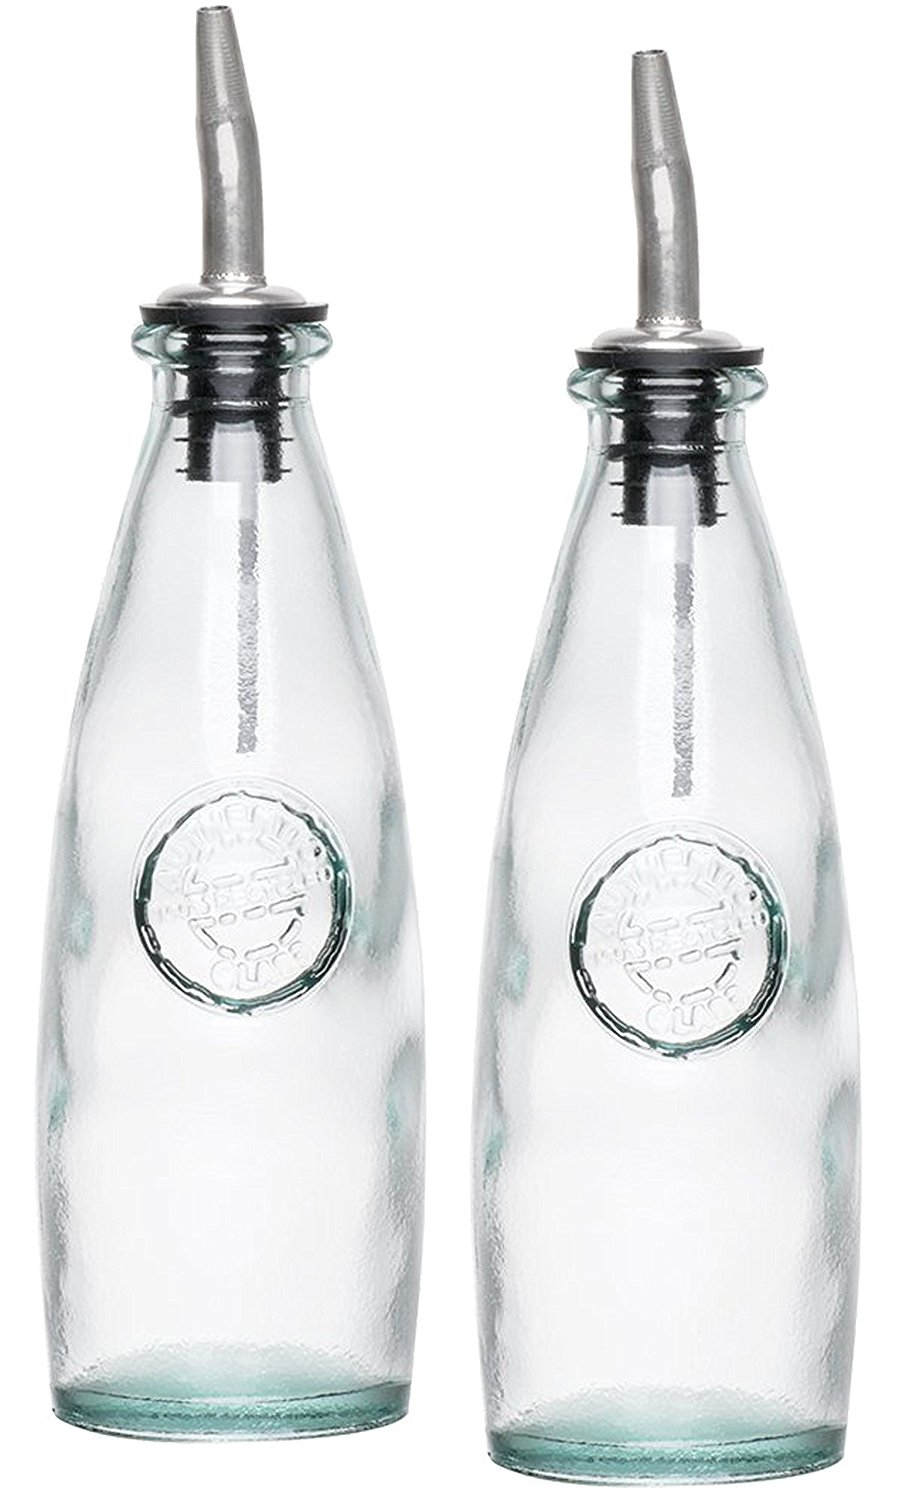 Olive Oil Dispenser 10 Oz Eco Friendly Recycled Gl And Vinegar Bottle With Stainless Steel Pourer 2 Piece Cruet Set